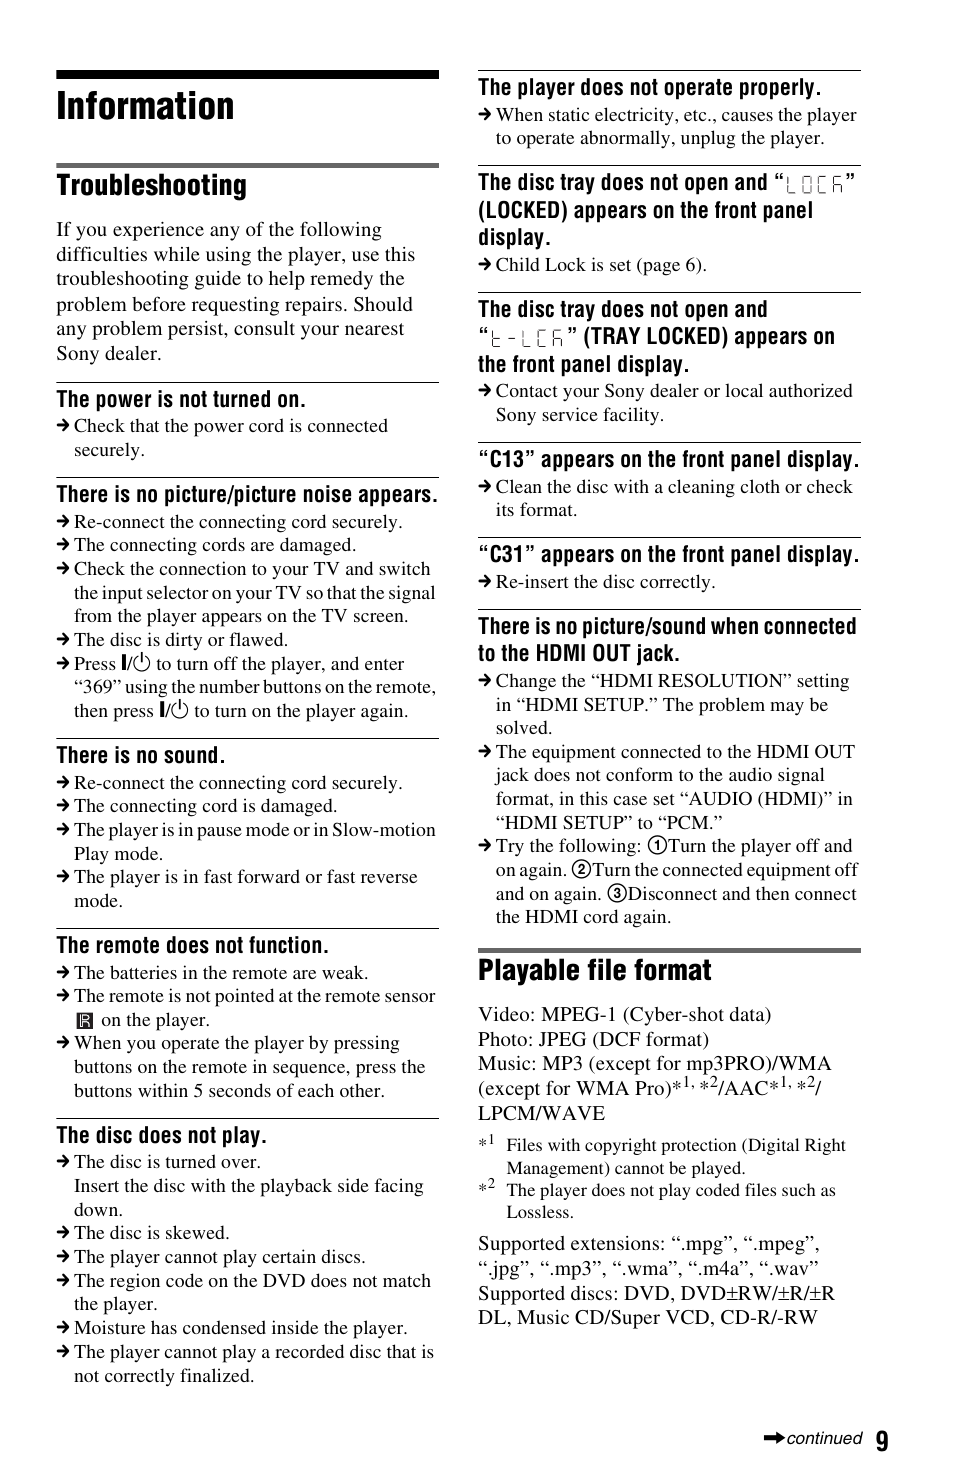 Information, Troubleshooting, Playable file format   Sony DVP-SR500H User  Manual   Page 9 / 12